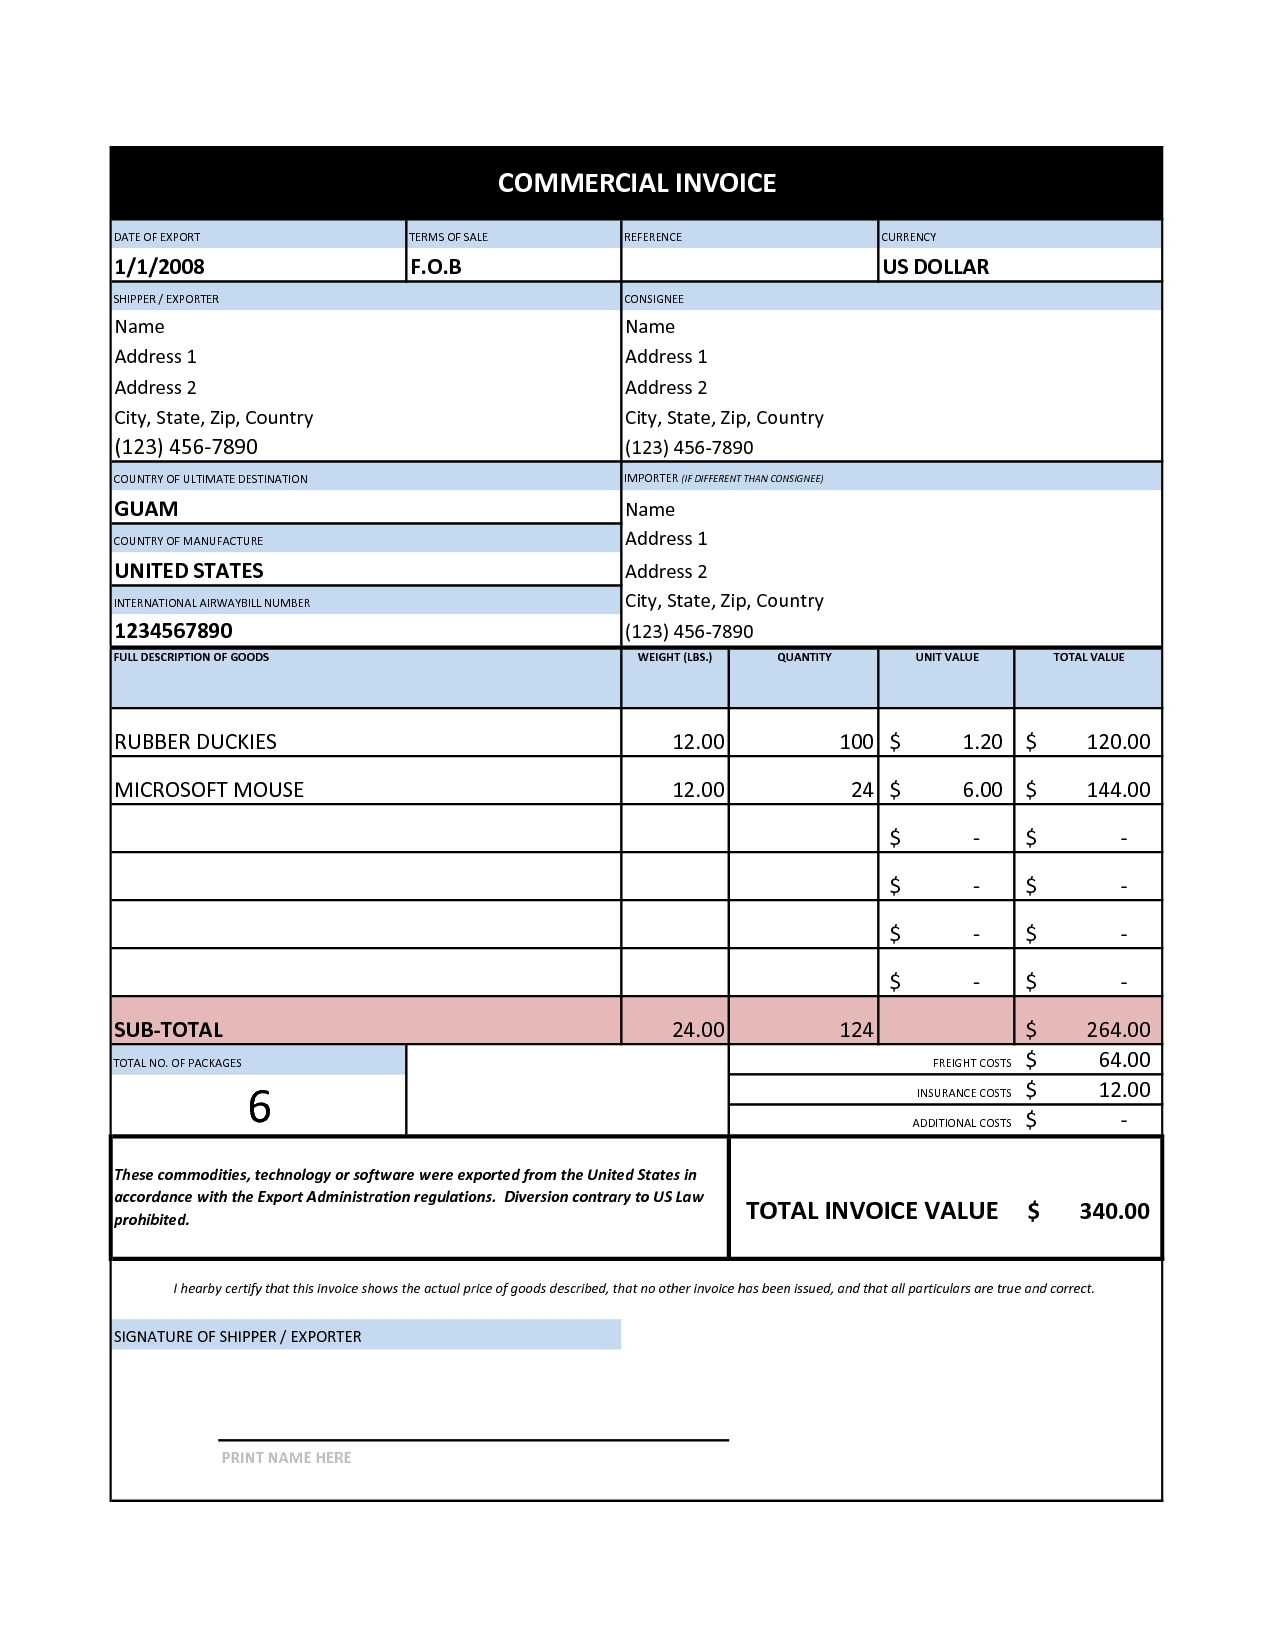 excel invoice sample invoice excel template free invoice template free 2016 1275 X 1650